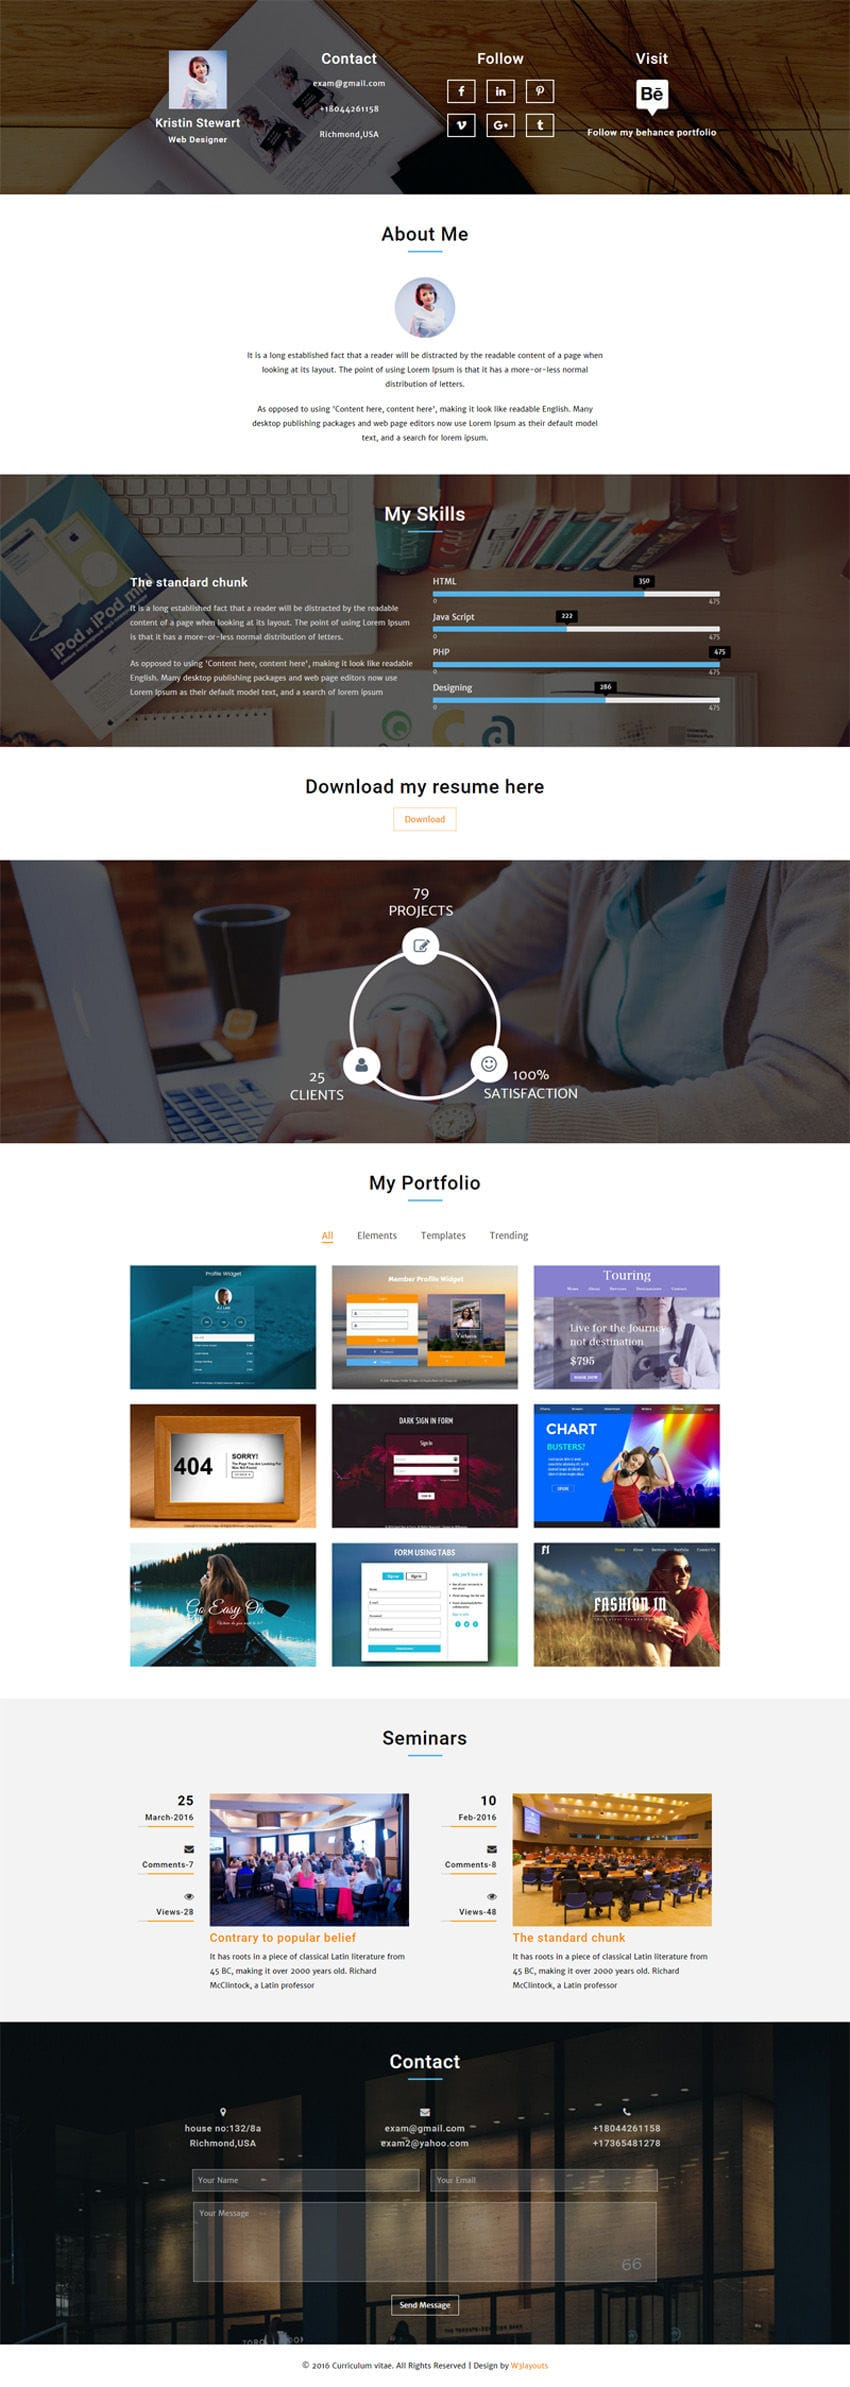 curriculum vitae a personal category flat bootstrap responsive web template. Black Bedroom Furniture Sets. Home Design Ideas